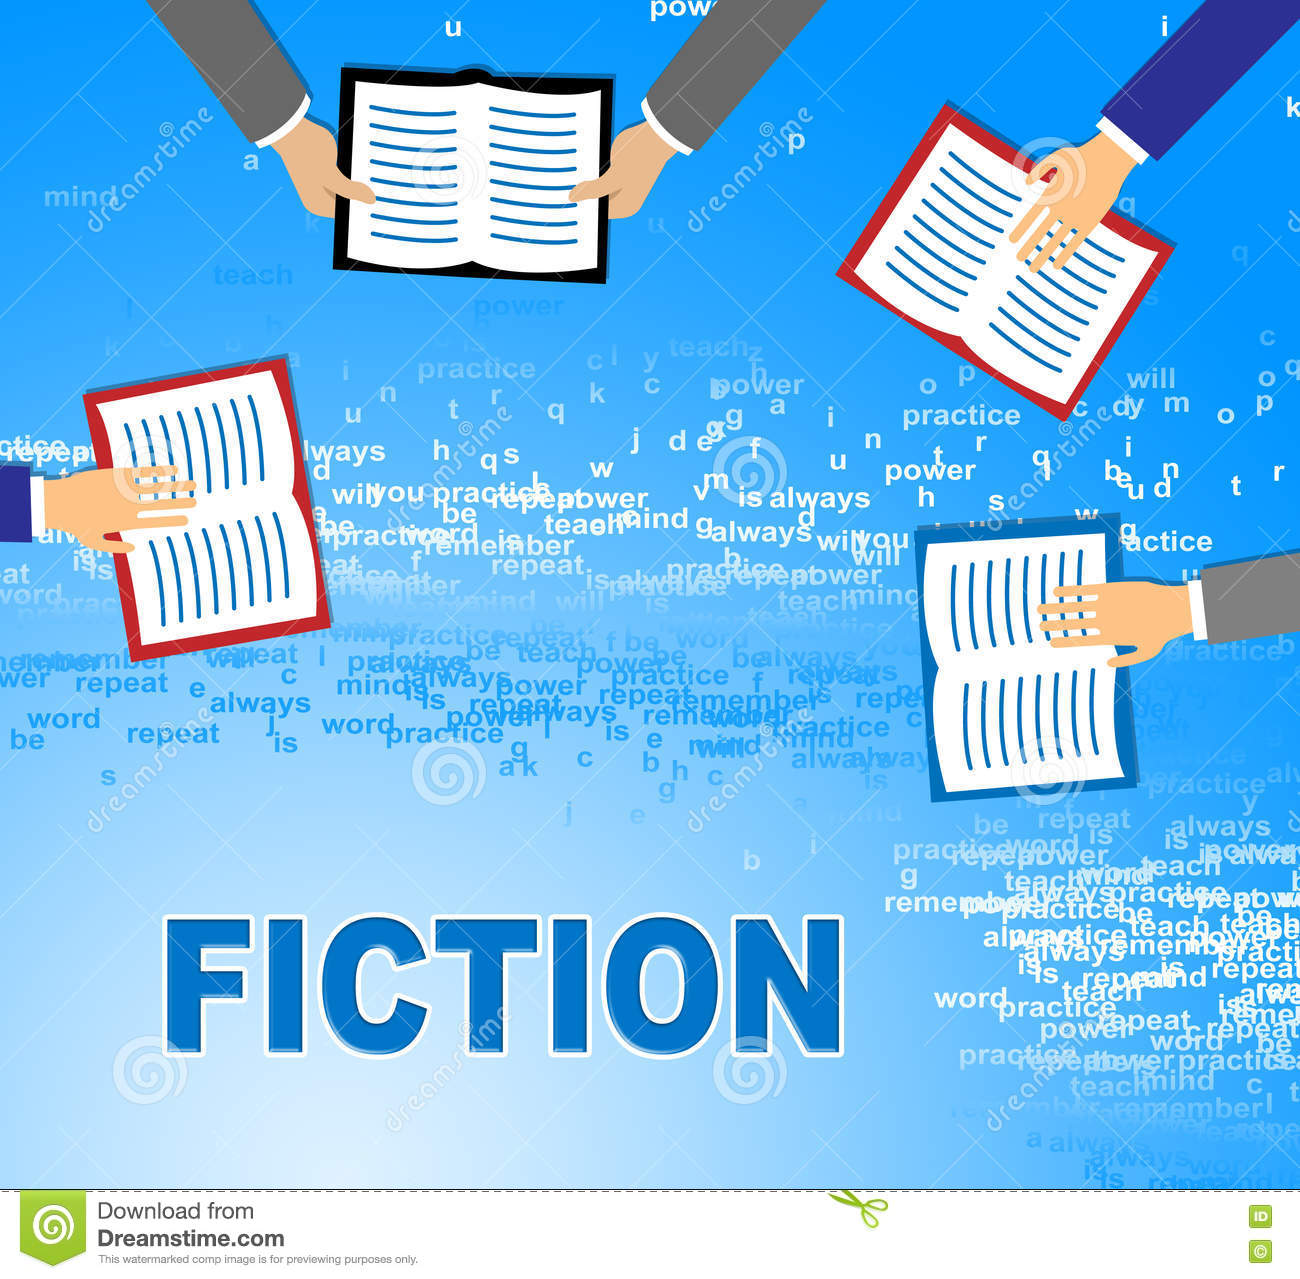 Popular Nonfiction Essay Books